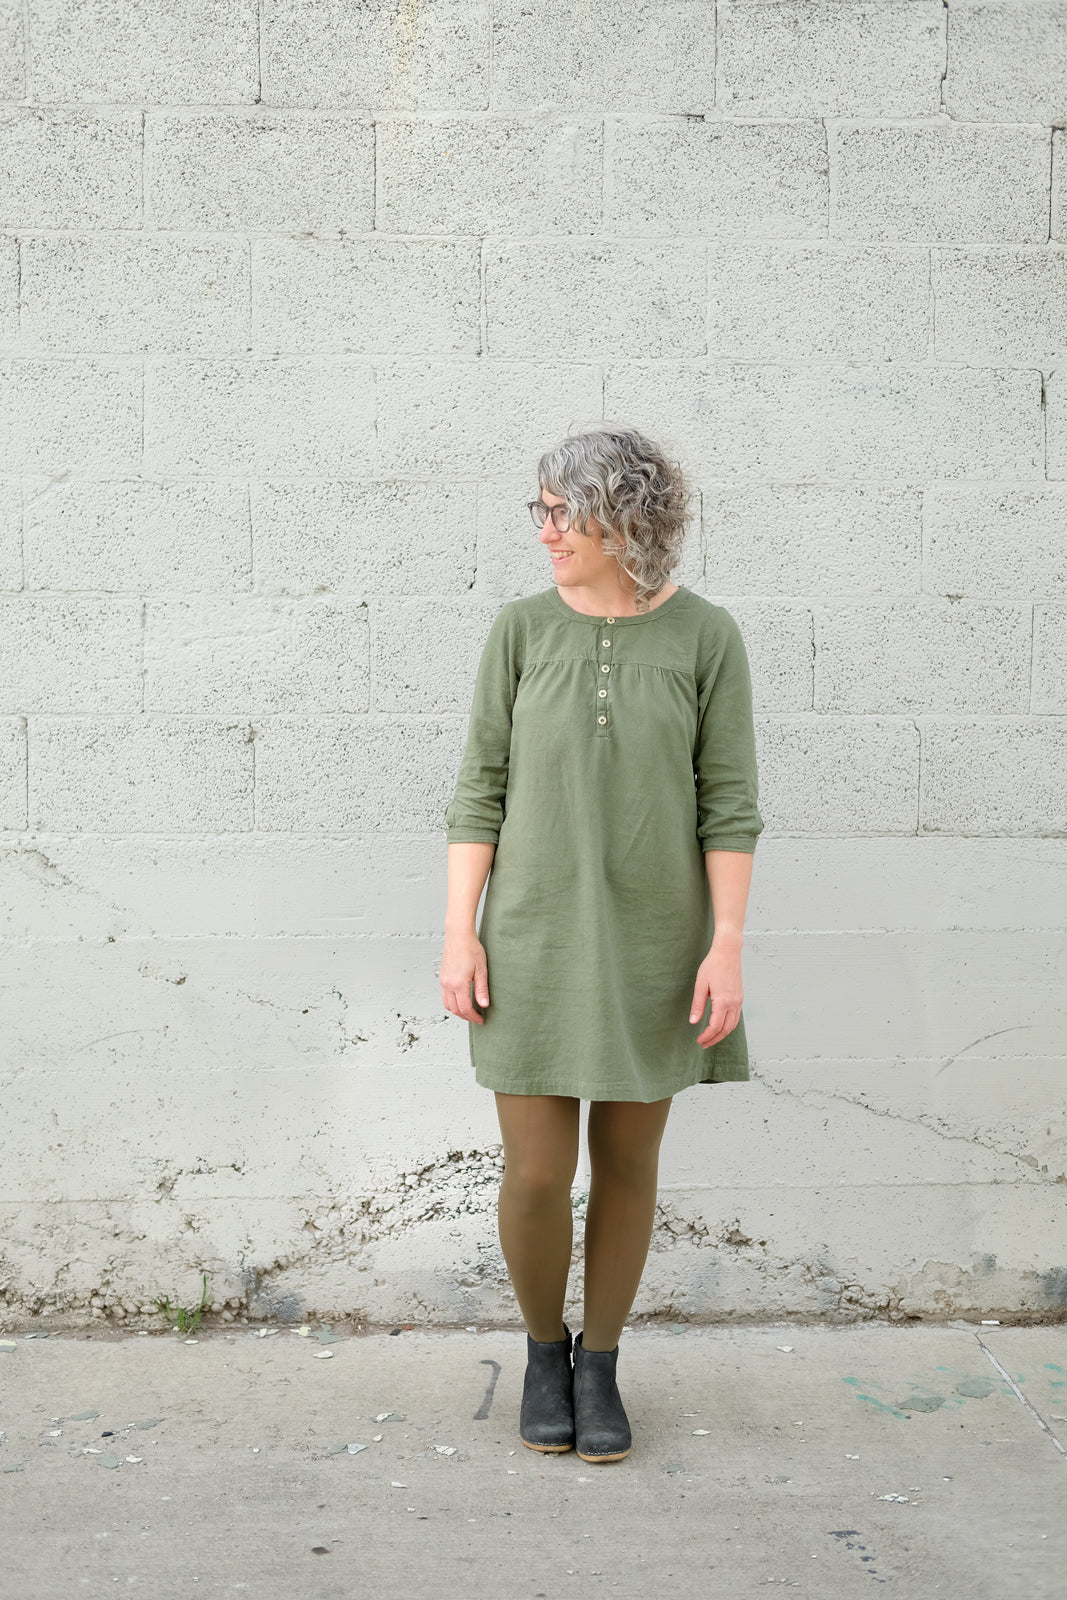 Jaime's olive green brome dress